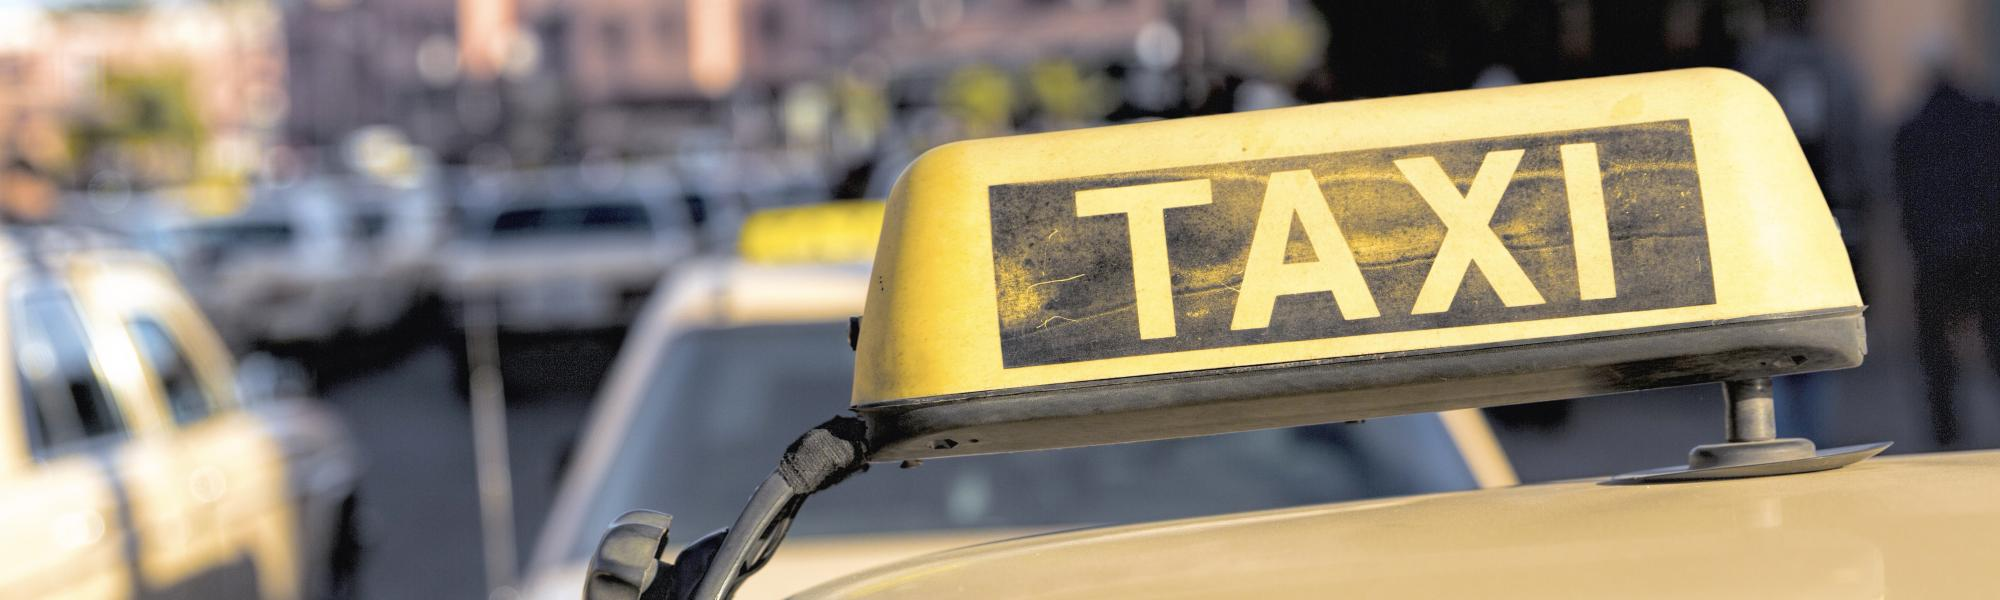 Taxi sign on the roof of the cab